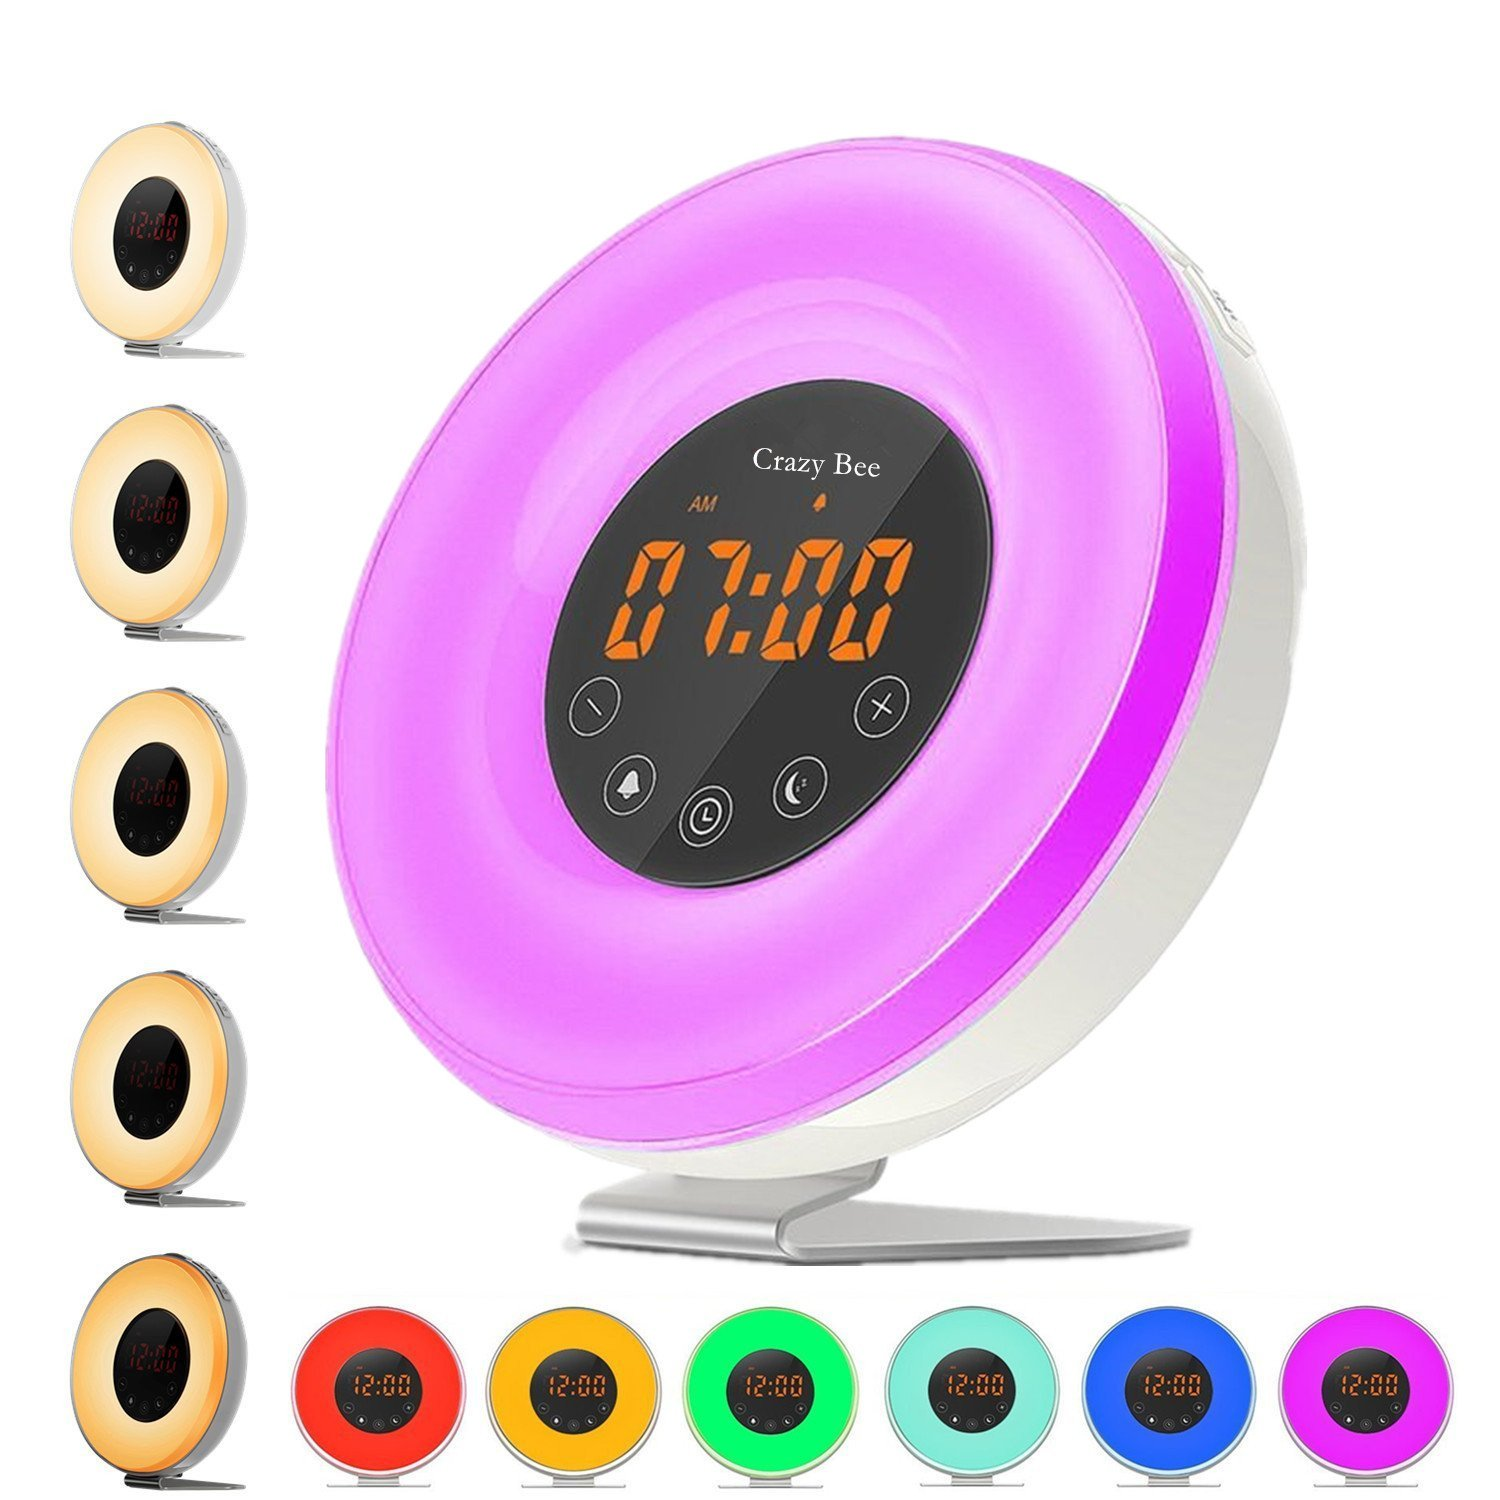 Sunlight Alarm Clock,Best Sunrise Wake up Light with 6 Nature Sounds for Heavy Sleepers.FM Radio, Touch Control with USB Charger, Sunset Simulator Alarm Clock by Crazy Bee